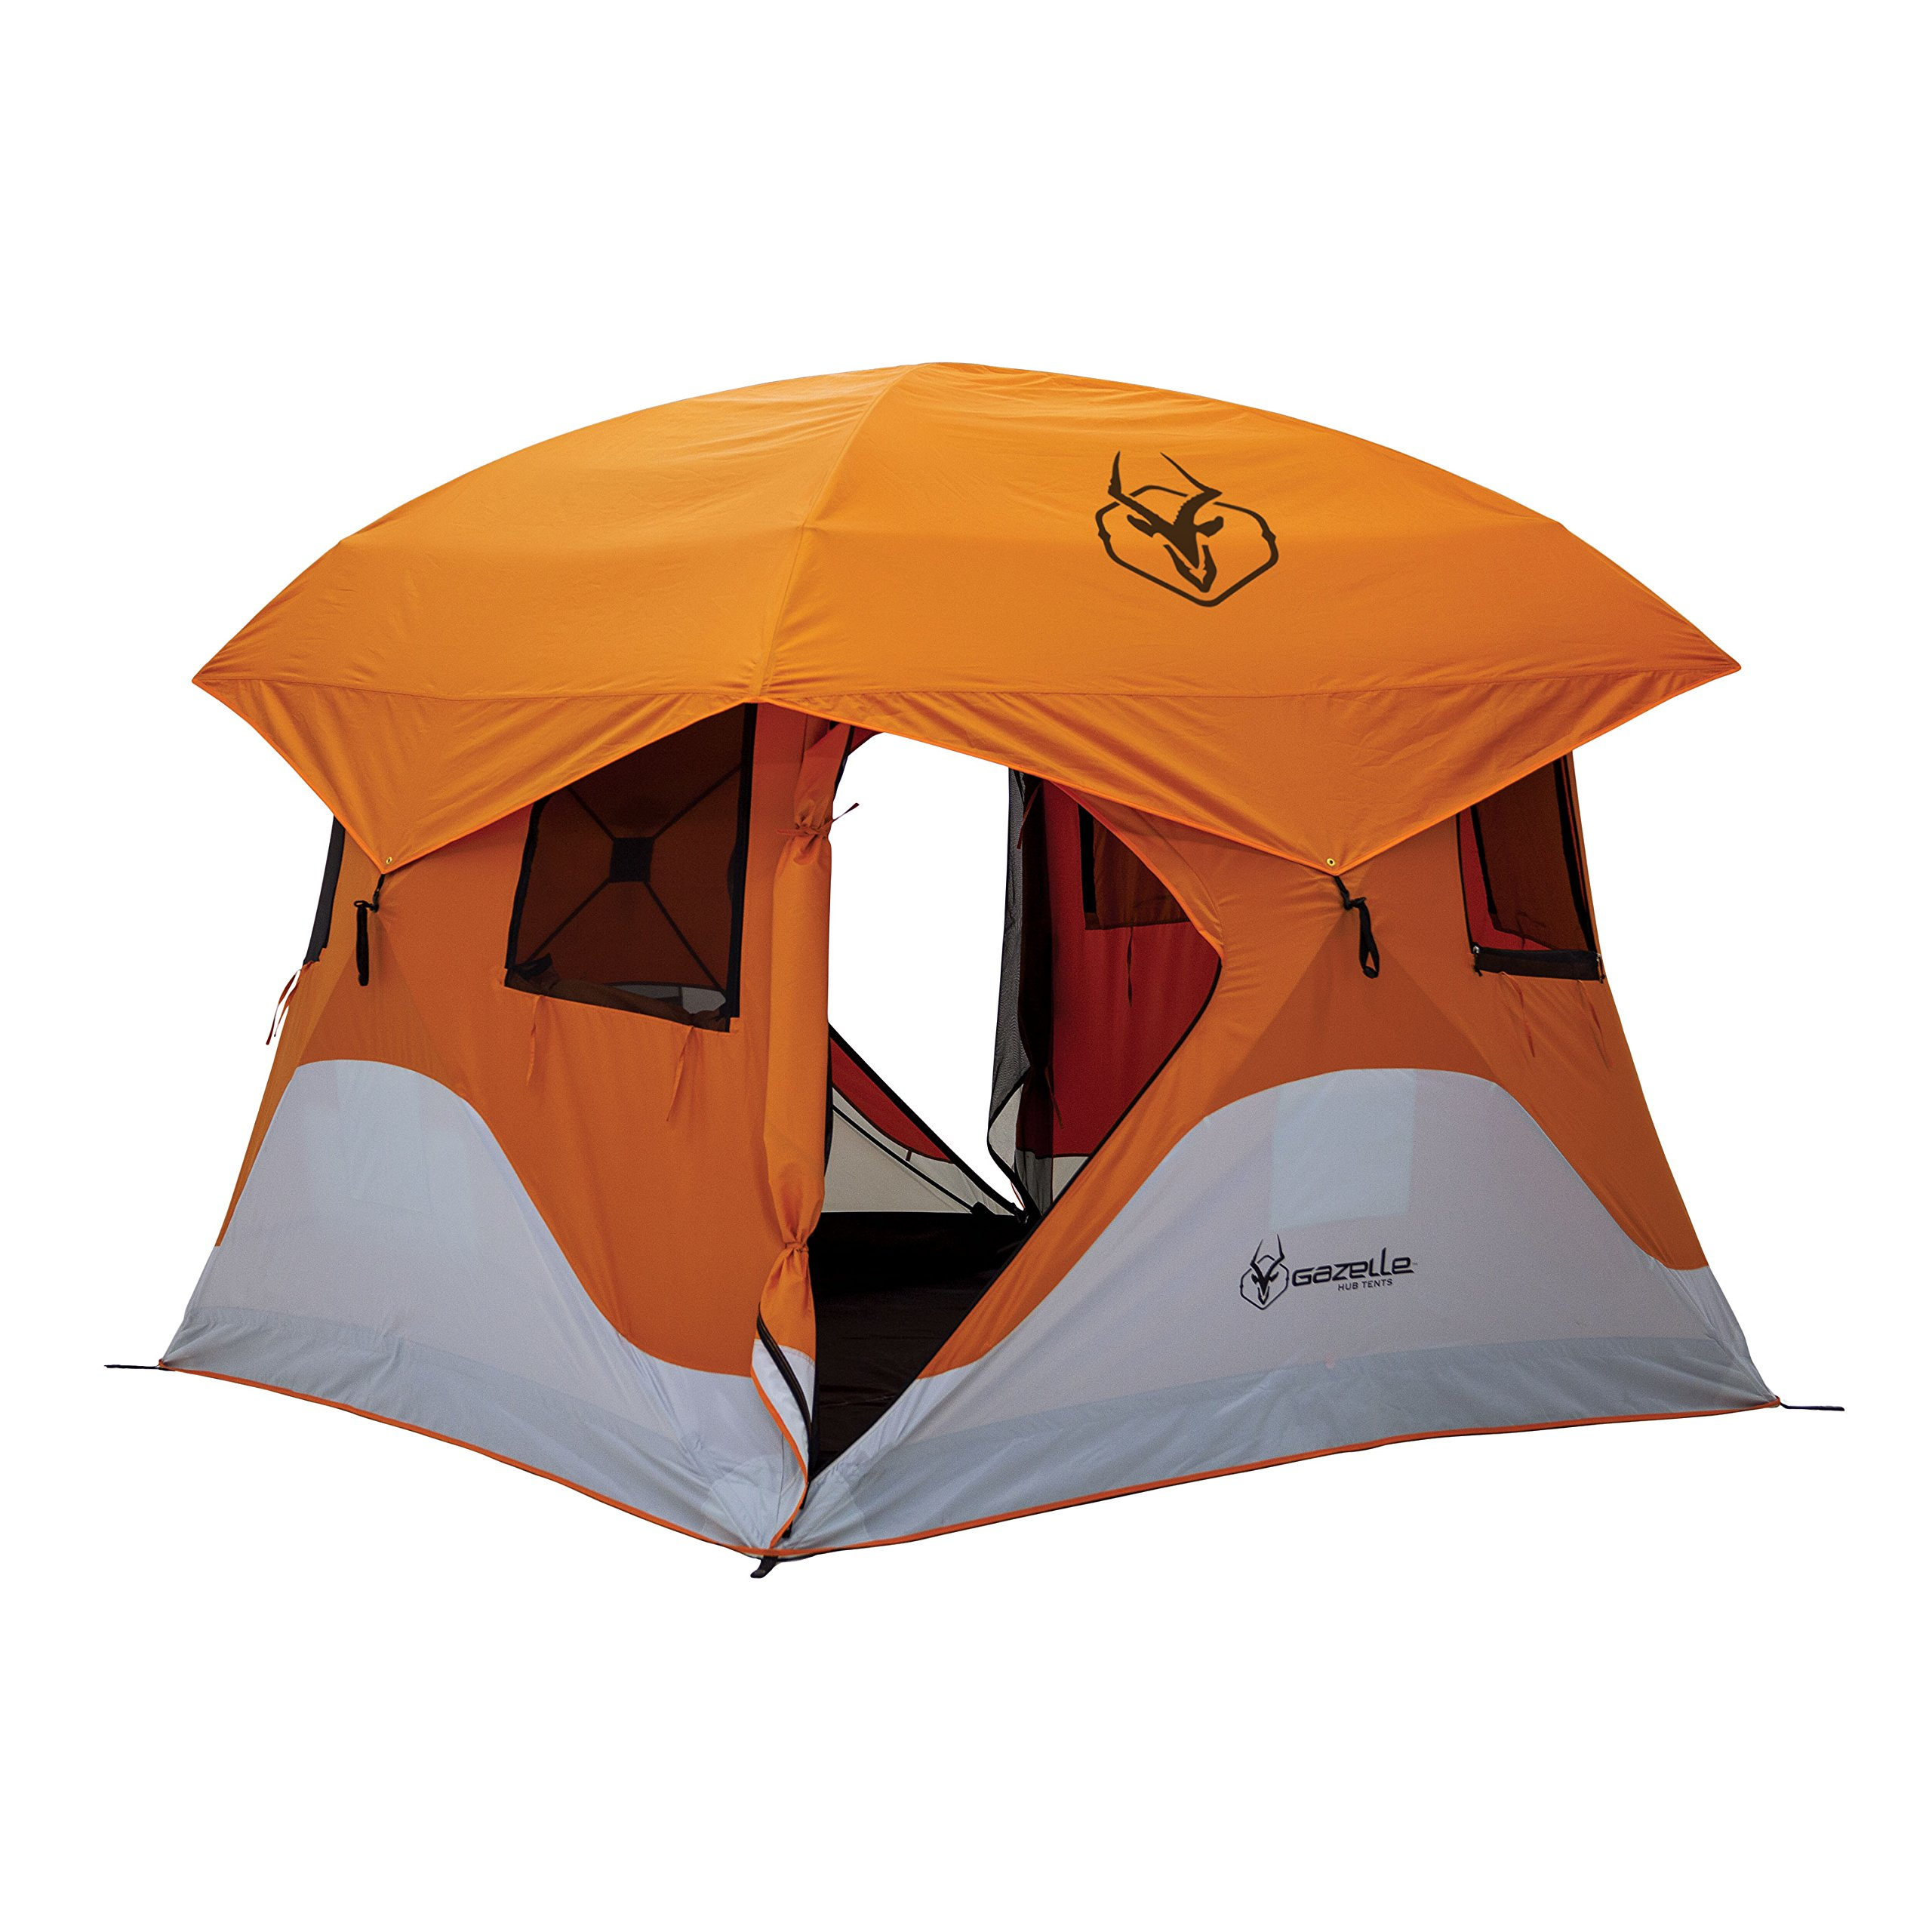 Gazelle 22272 T4 Pop-Up Portable Camping Hub Overlanding Tent, Easy Instant Set Up in 90 Seconds, 4 Person by Gazelle Tents